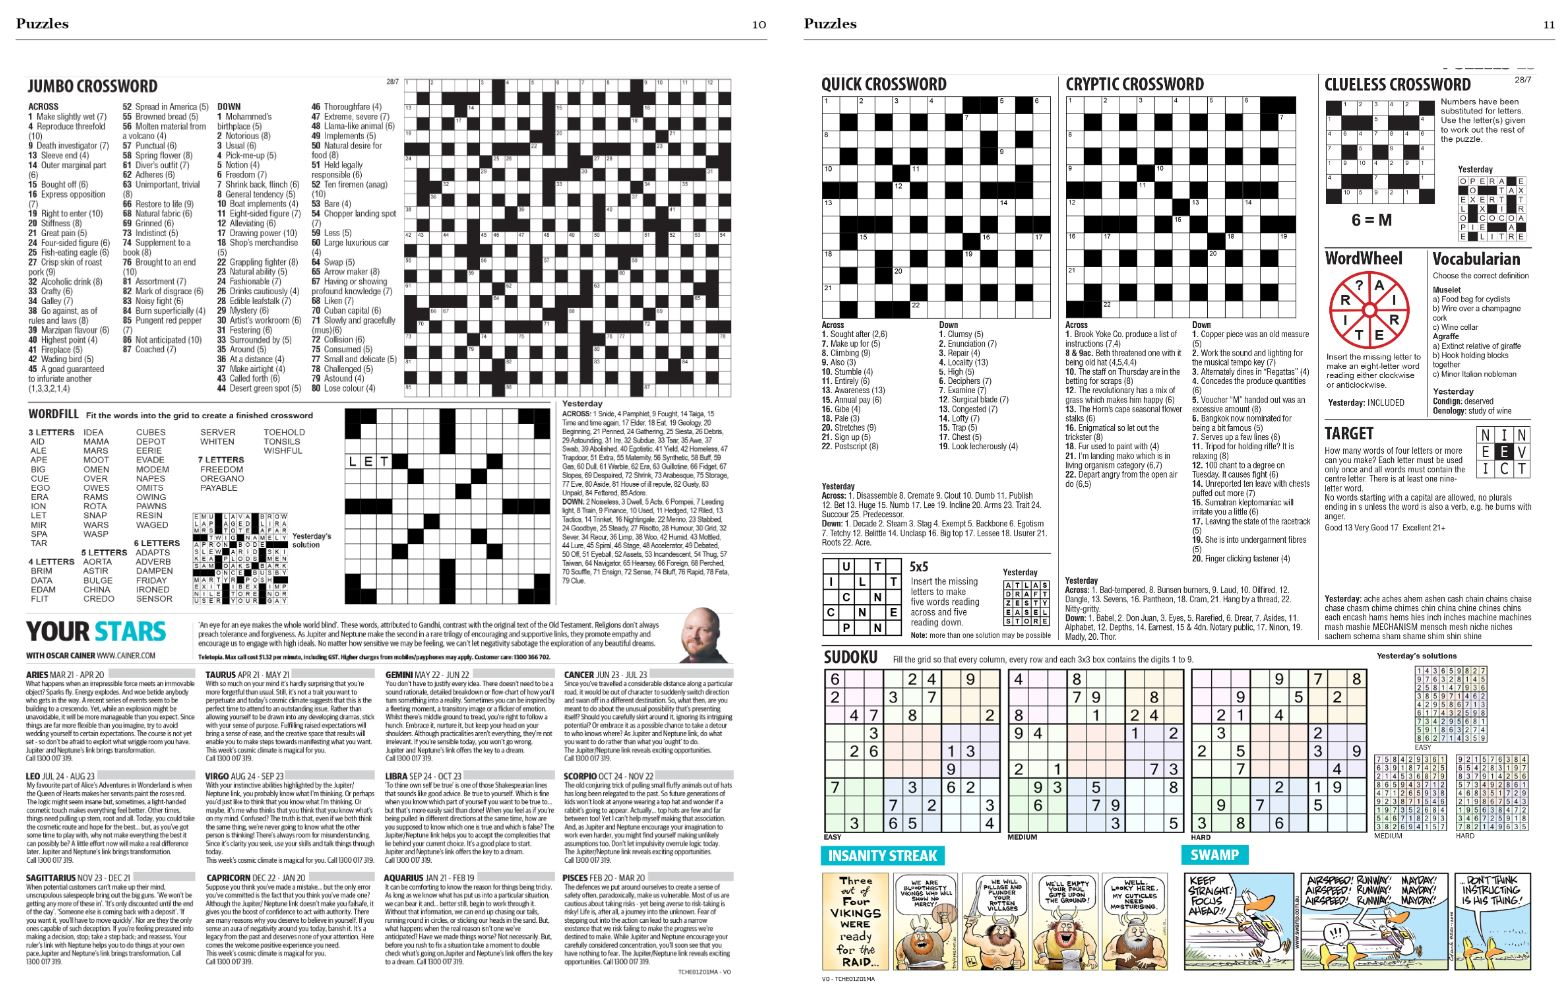 Puzzles are included in the digital edition.